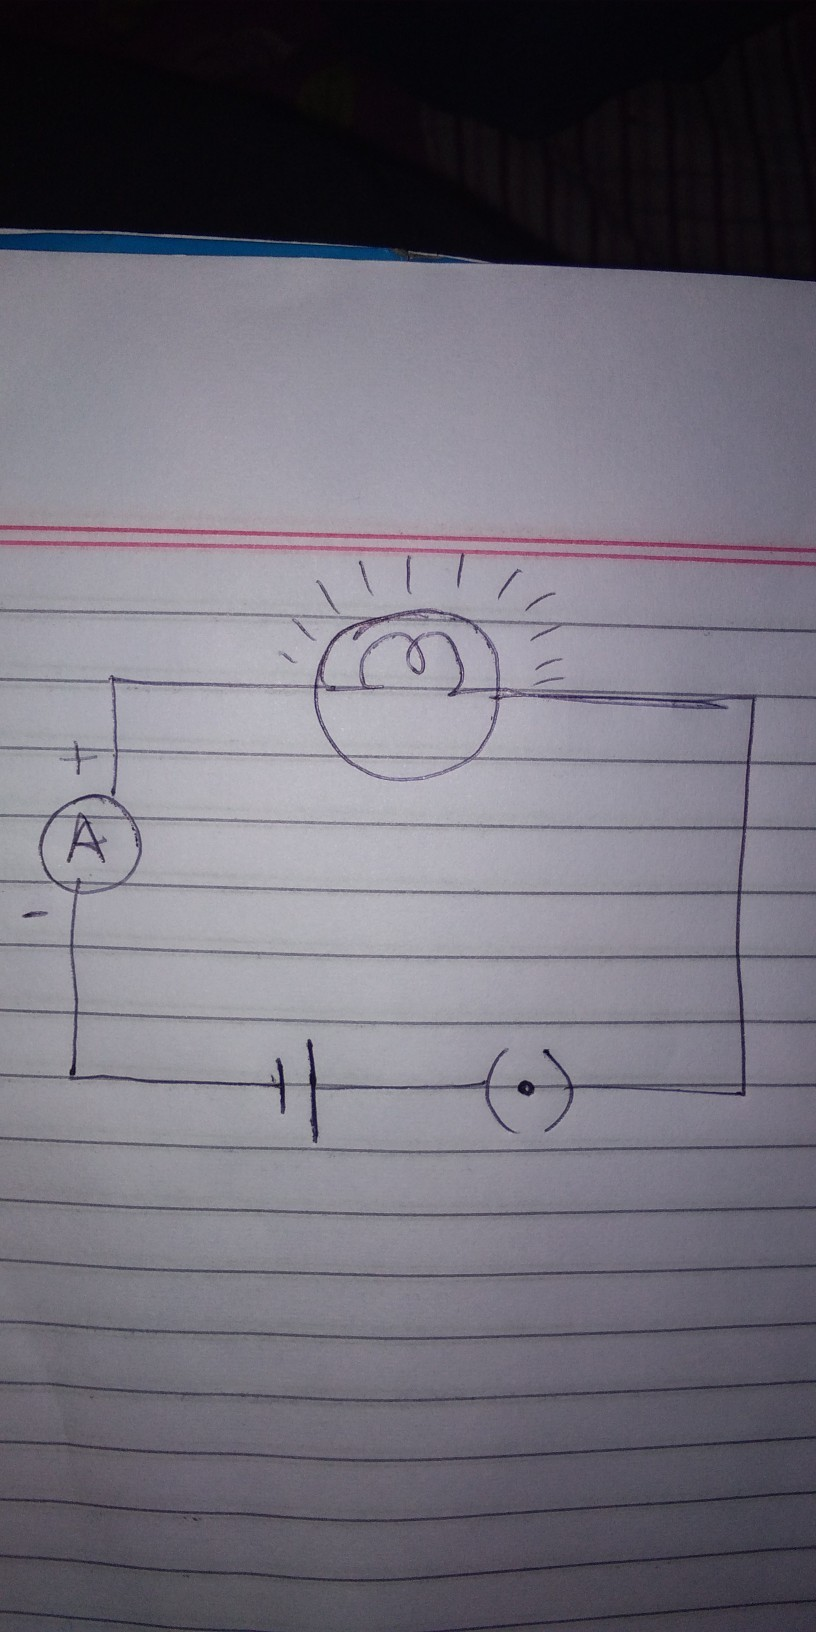 Draw A Circuit Diagram Having The Following Components 1bulb Shows Cell Lamp And An Ammeter Is Connected Download